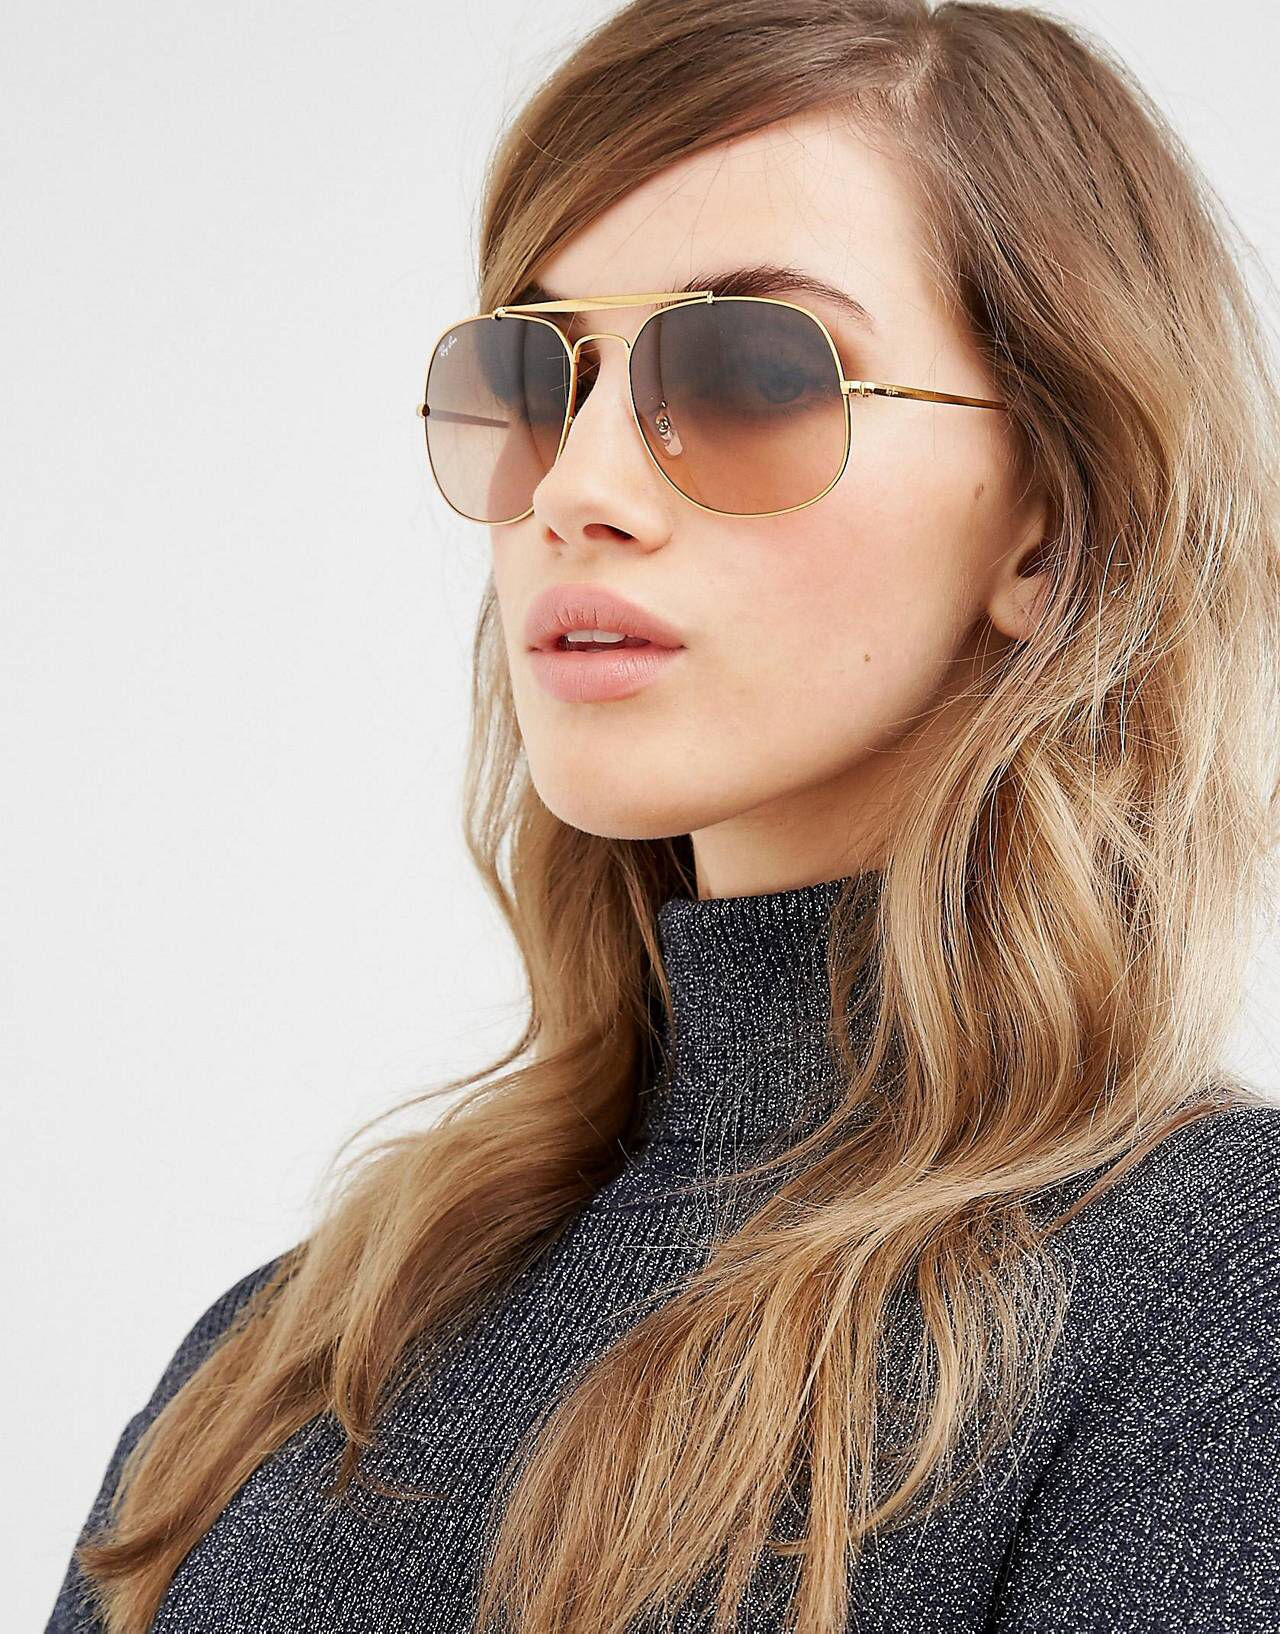 fec8a5d4a79f4 Ray ban the general aviator with ombre brown lens